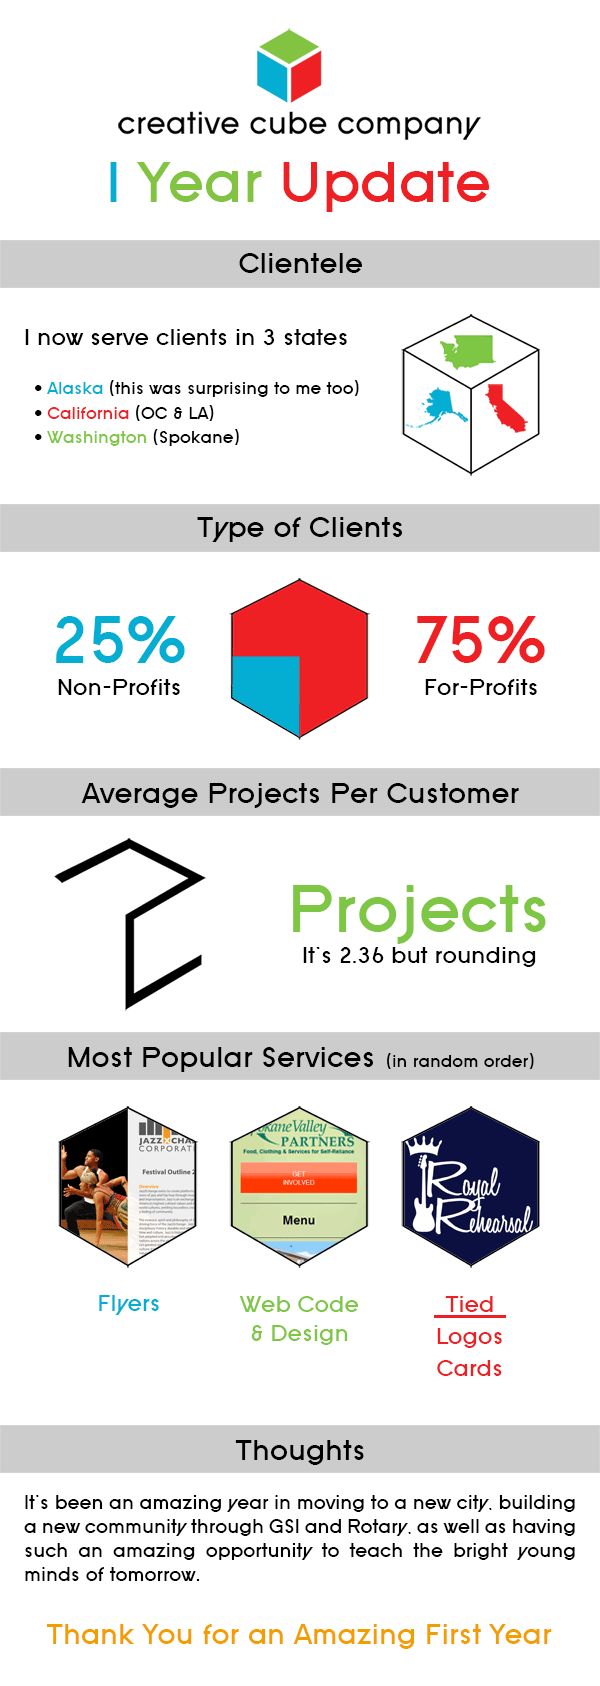 Creative Cube Company 1 Year Update Infographic